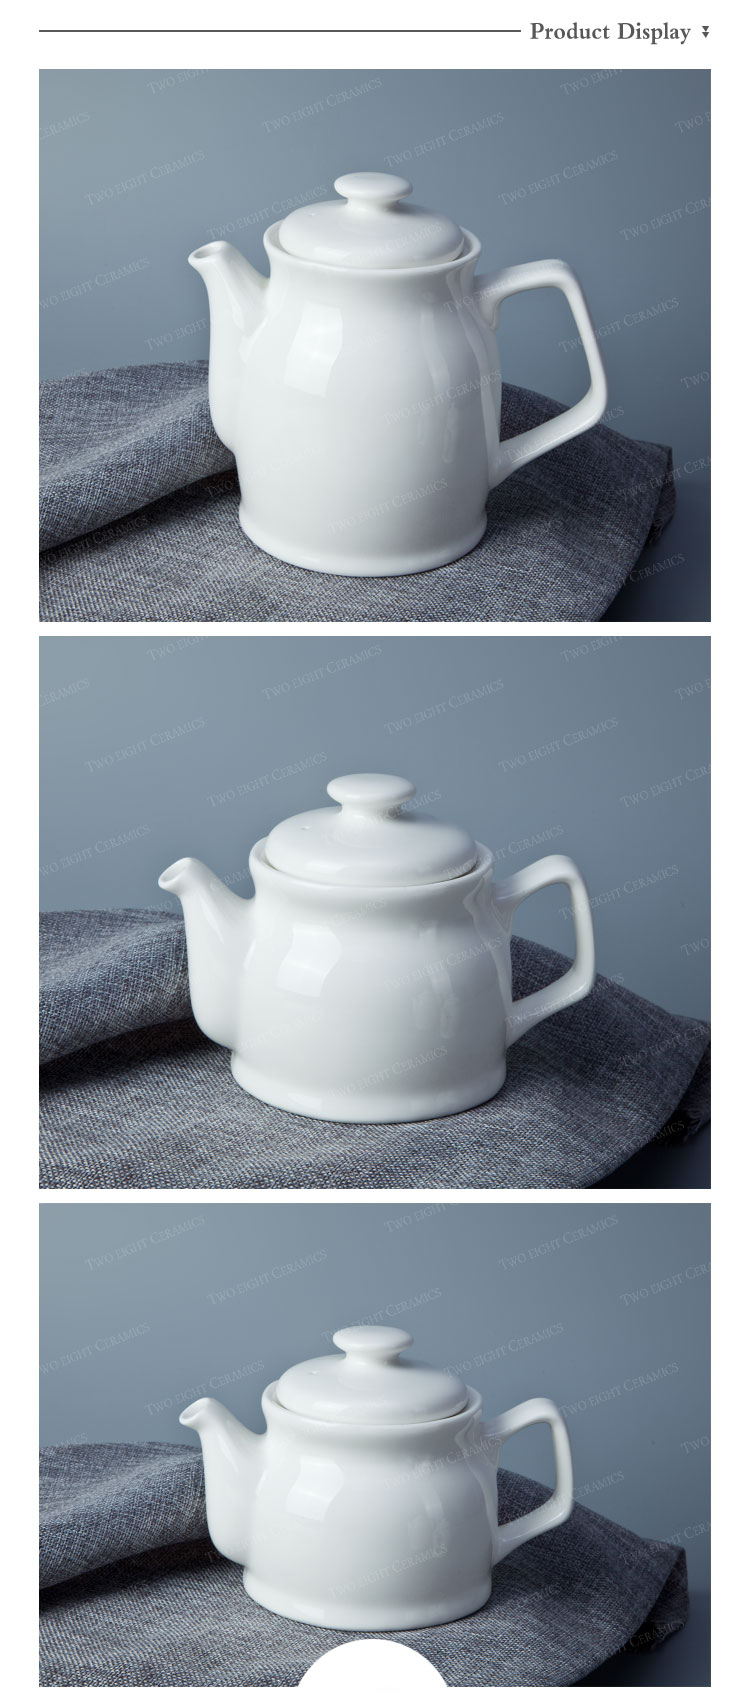 Catering banquet wedding for sale Chinese style plain white porcelain teapot